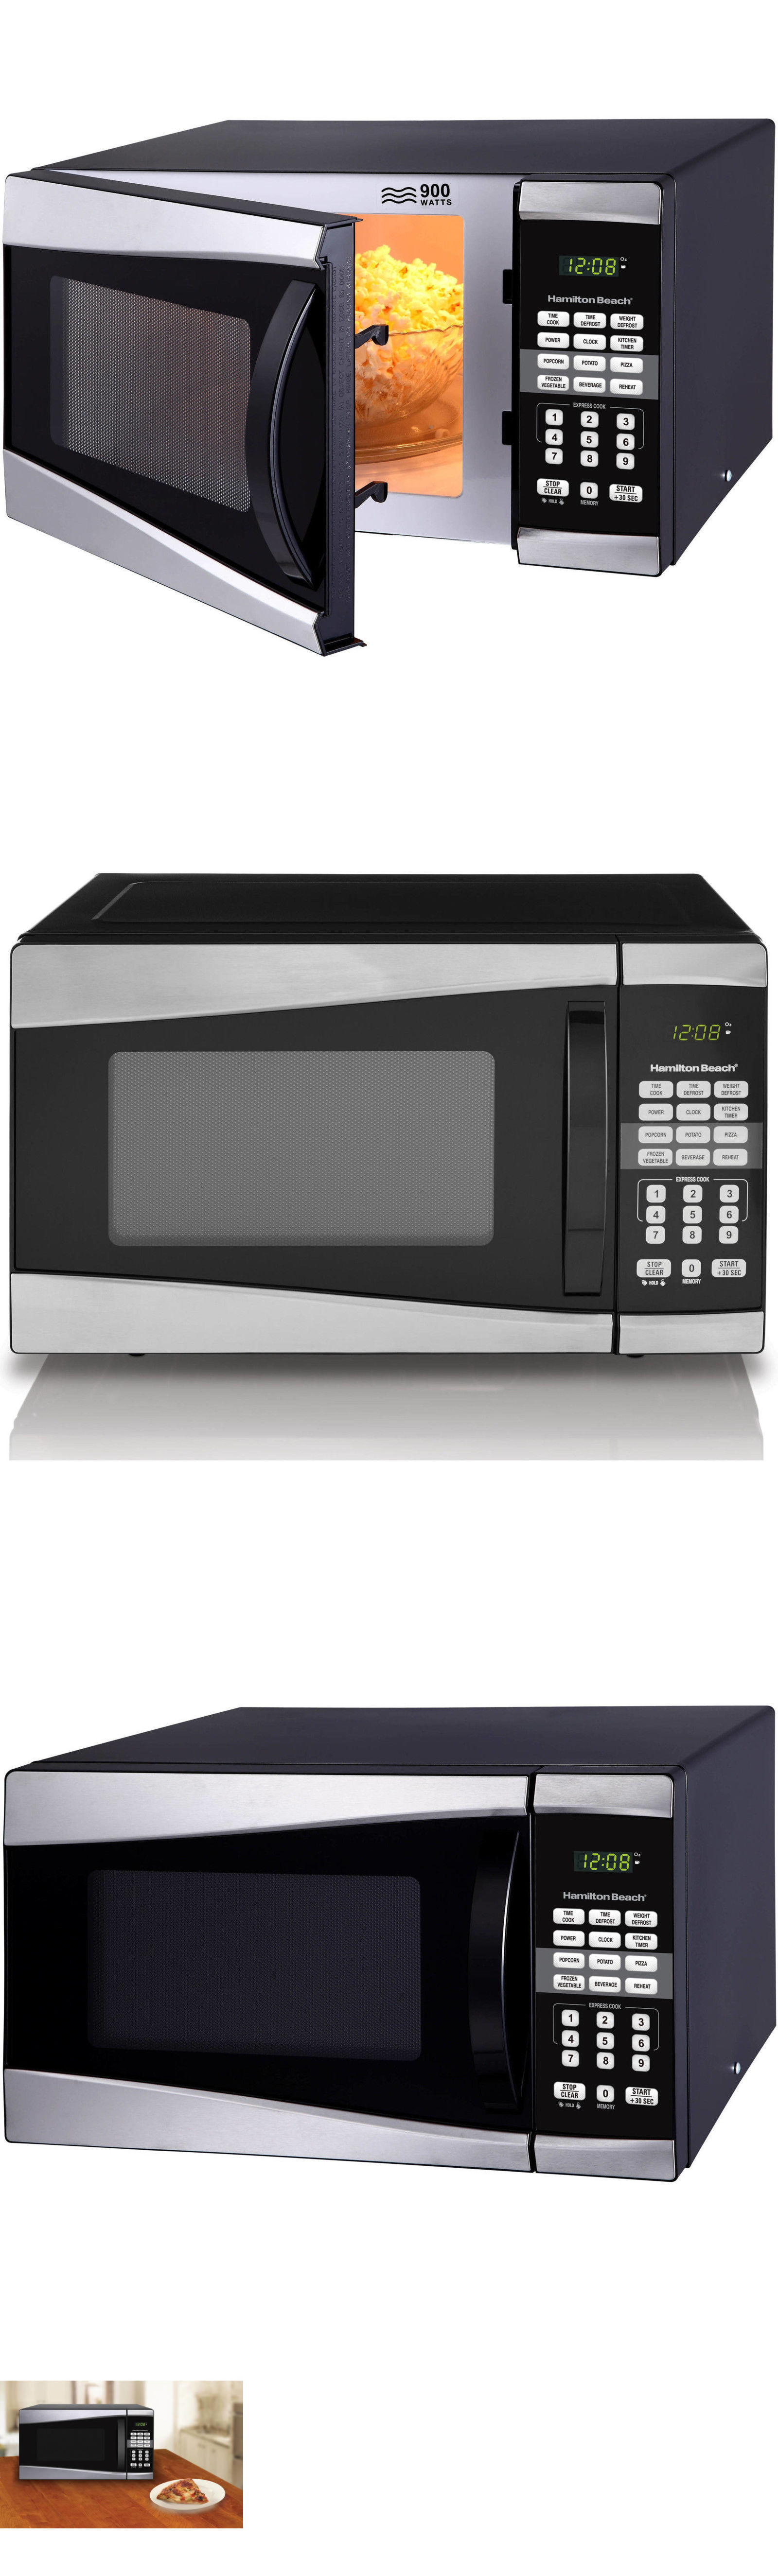 Microwave Ovens 150138 Low Profile Rv Mini Small Best Compact Dorm Kitchen Countertop Oven